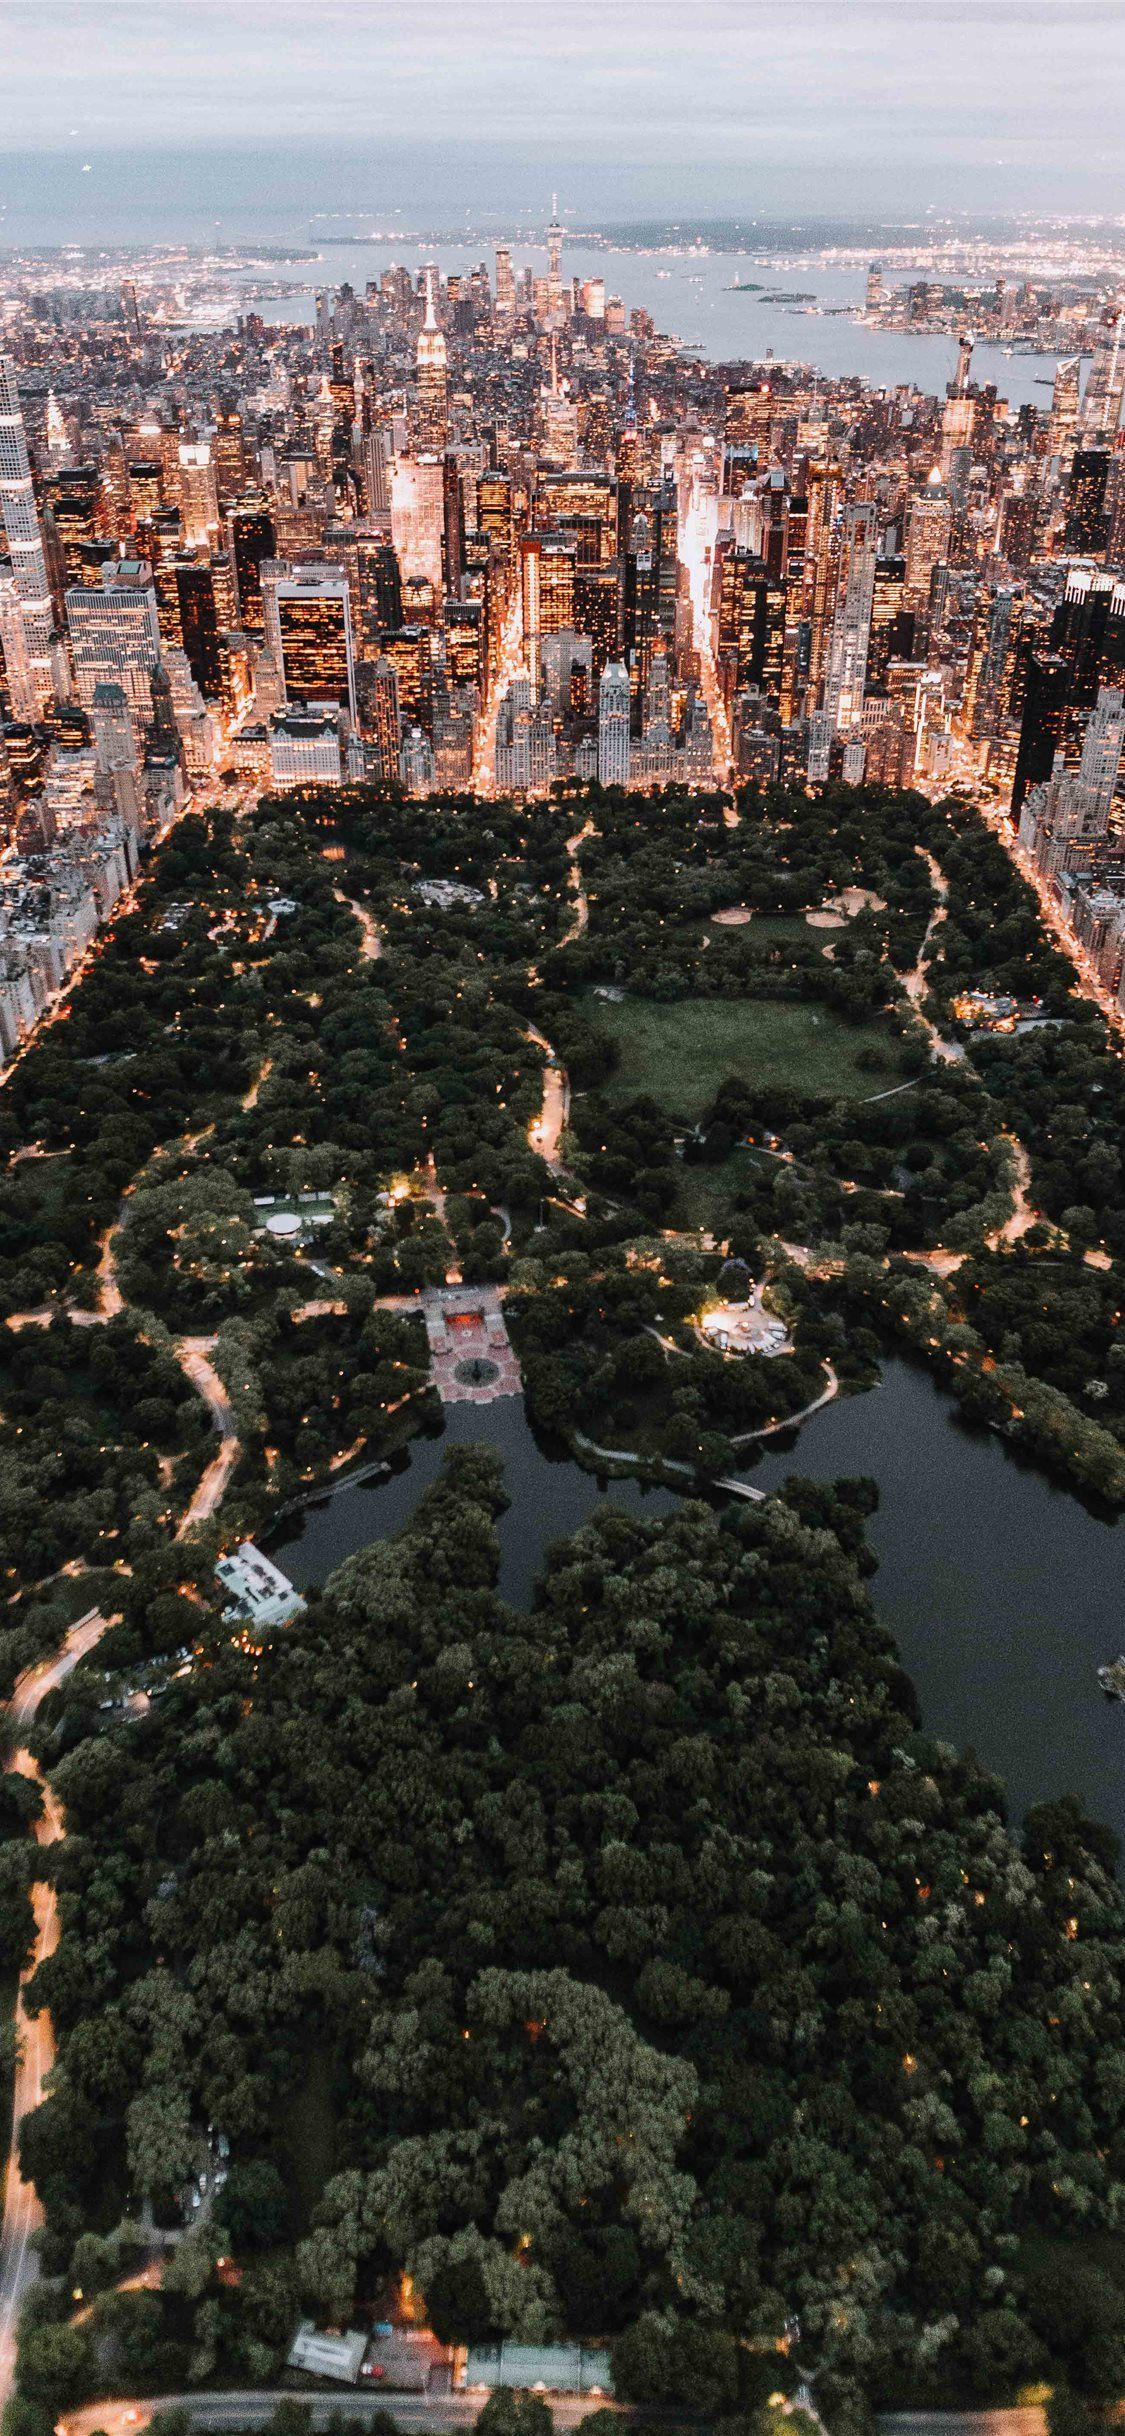 Buy Amazon Amzn To 31edjmn Free Download The Central Park From Above New York City Wallpaper Beaty Your Ip New York Wallpaper City Wallpaper Travel Aesthetic